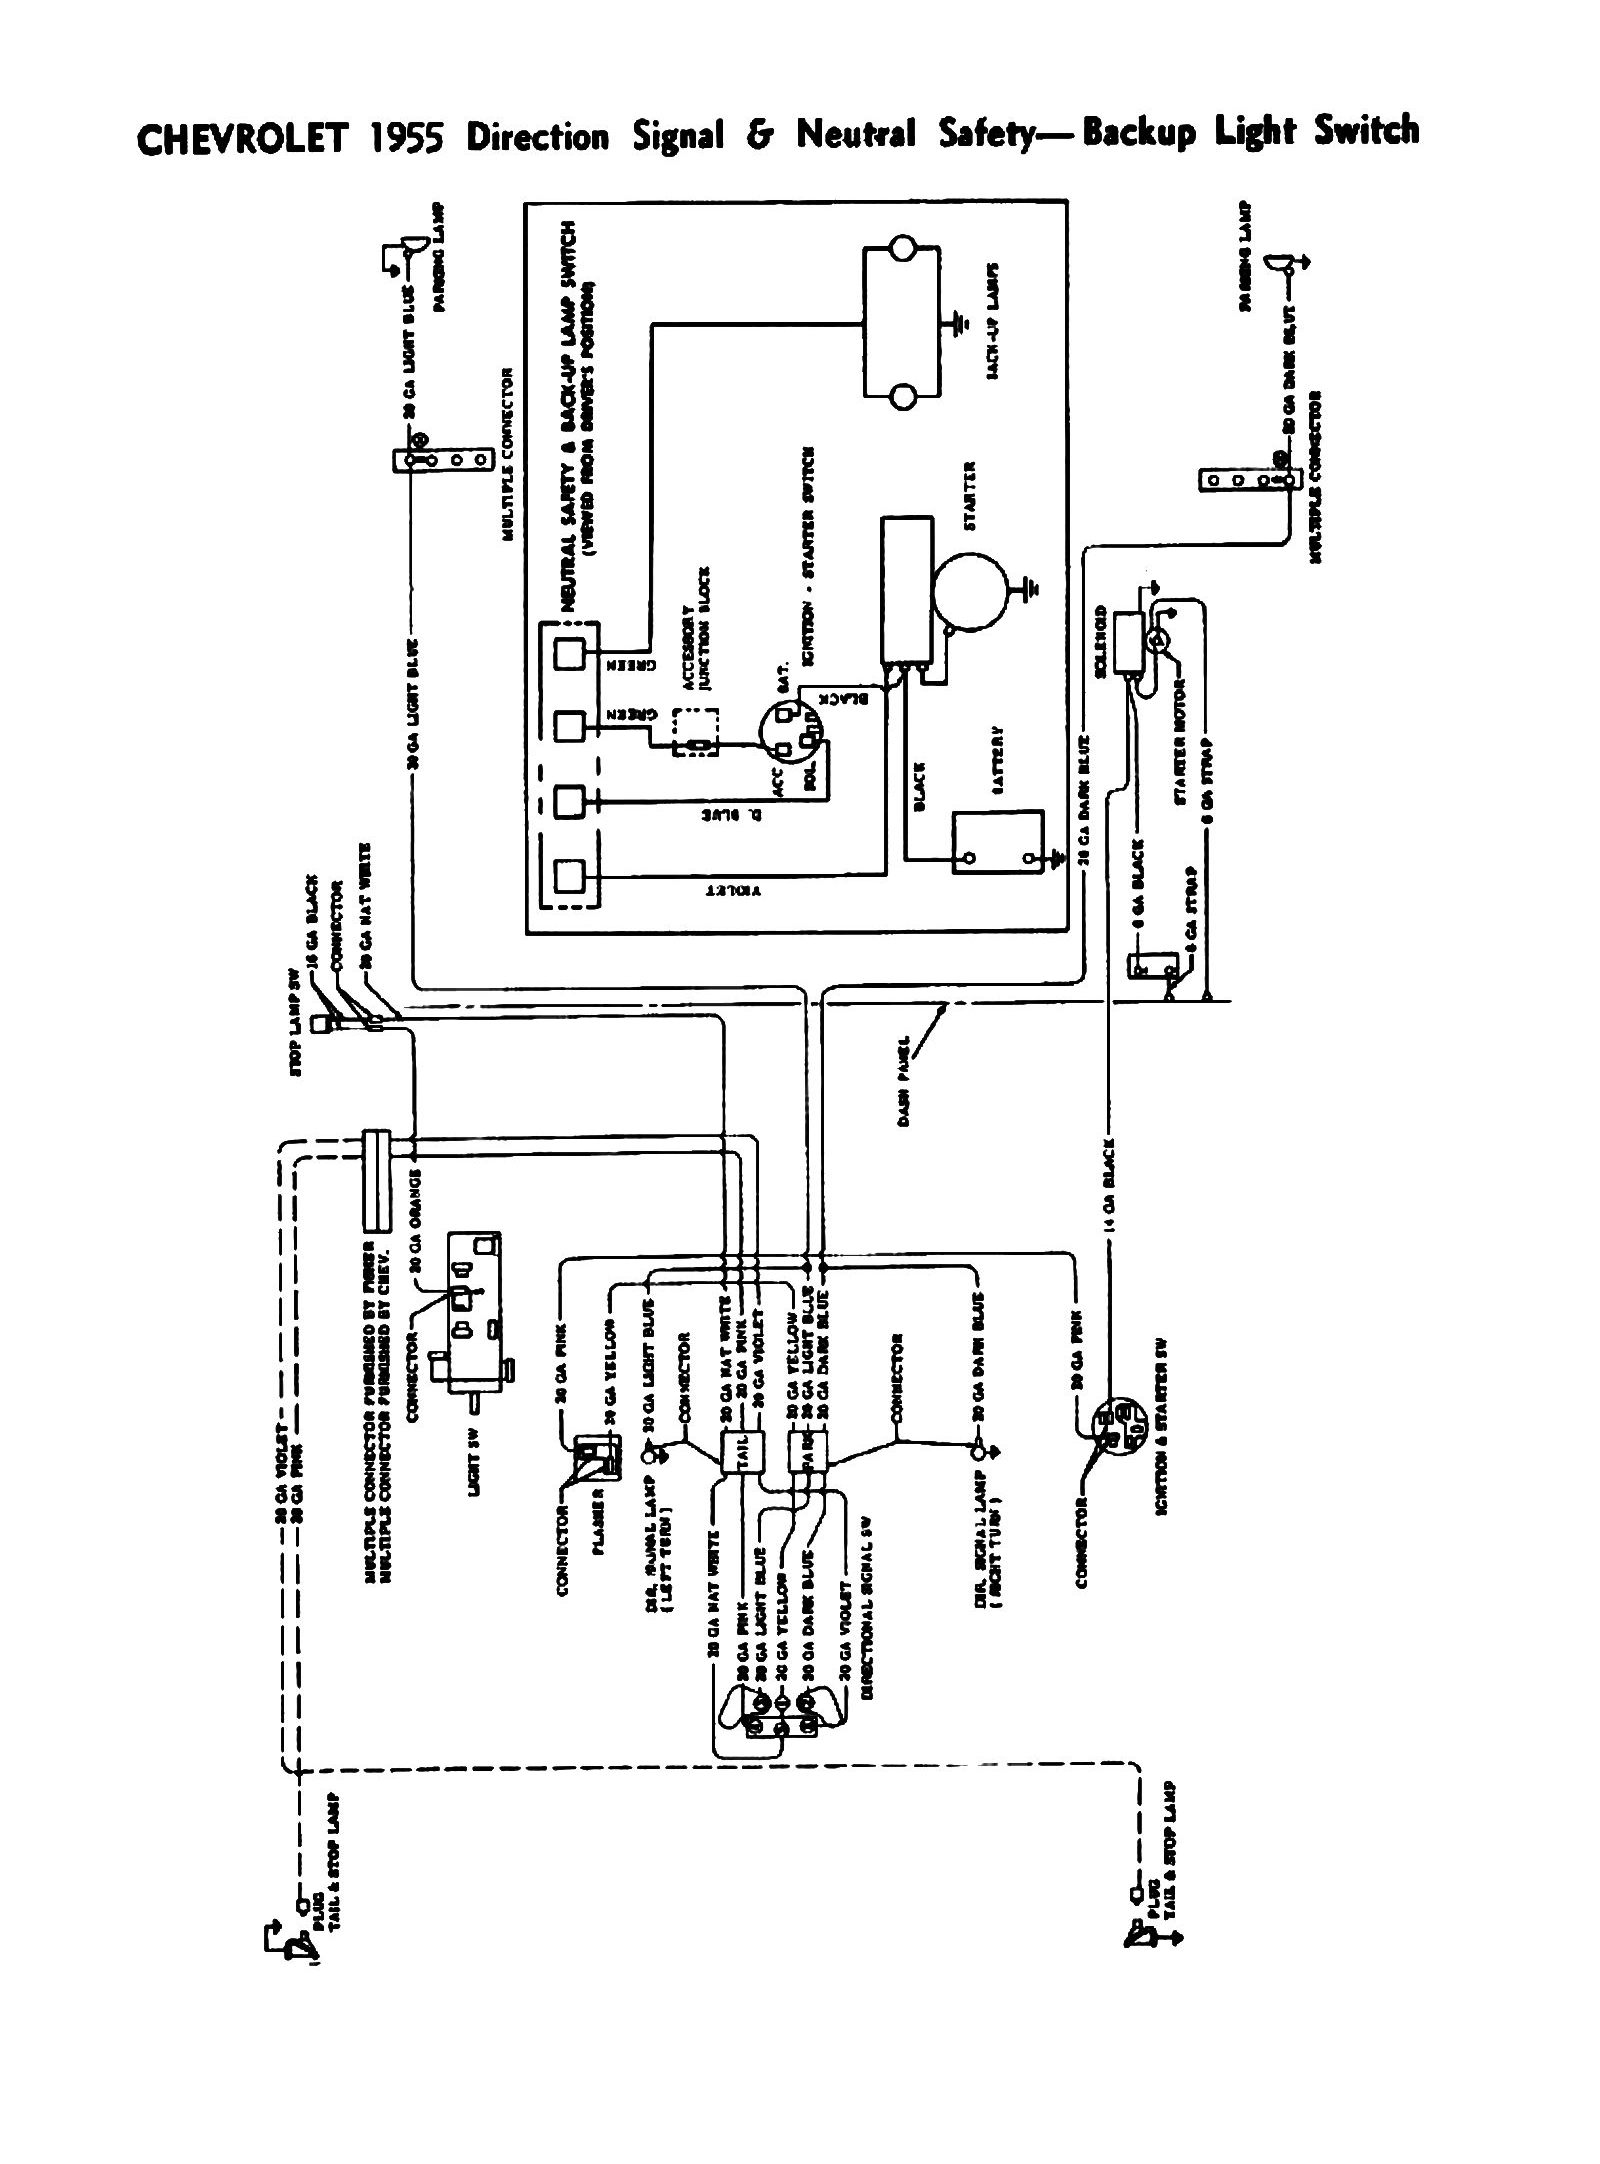 truck starter wiring diagram truck wiring diagrams online 1955 directional signals neutral safety backup switches repair guides wiring diagrams